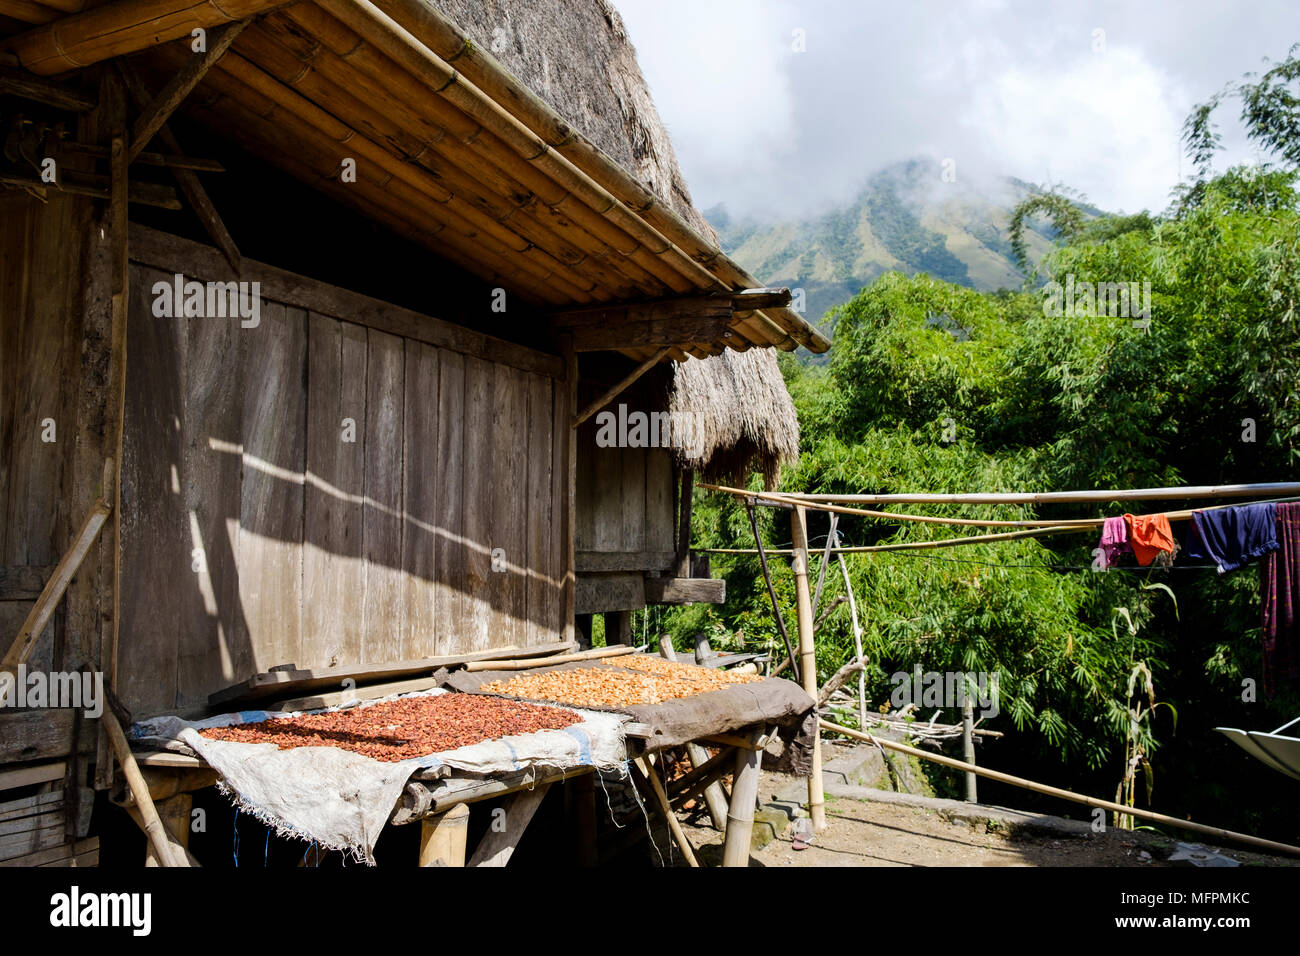 Nuts (most likely candlenuts or macadamia) laid out to dry outside a house in Bena traditional village, Ngada District, Island of Flores, Indonesia. - Stock Image